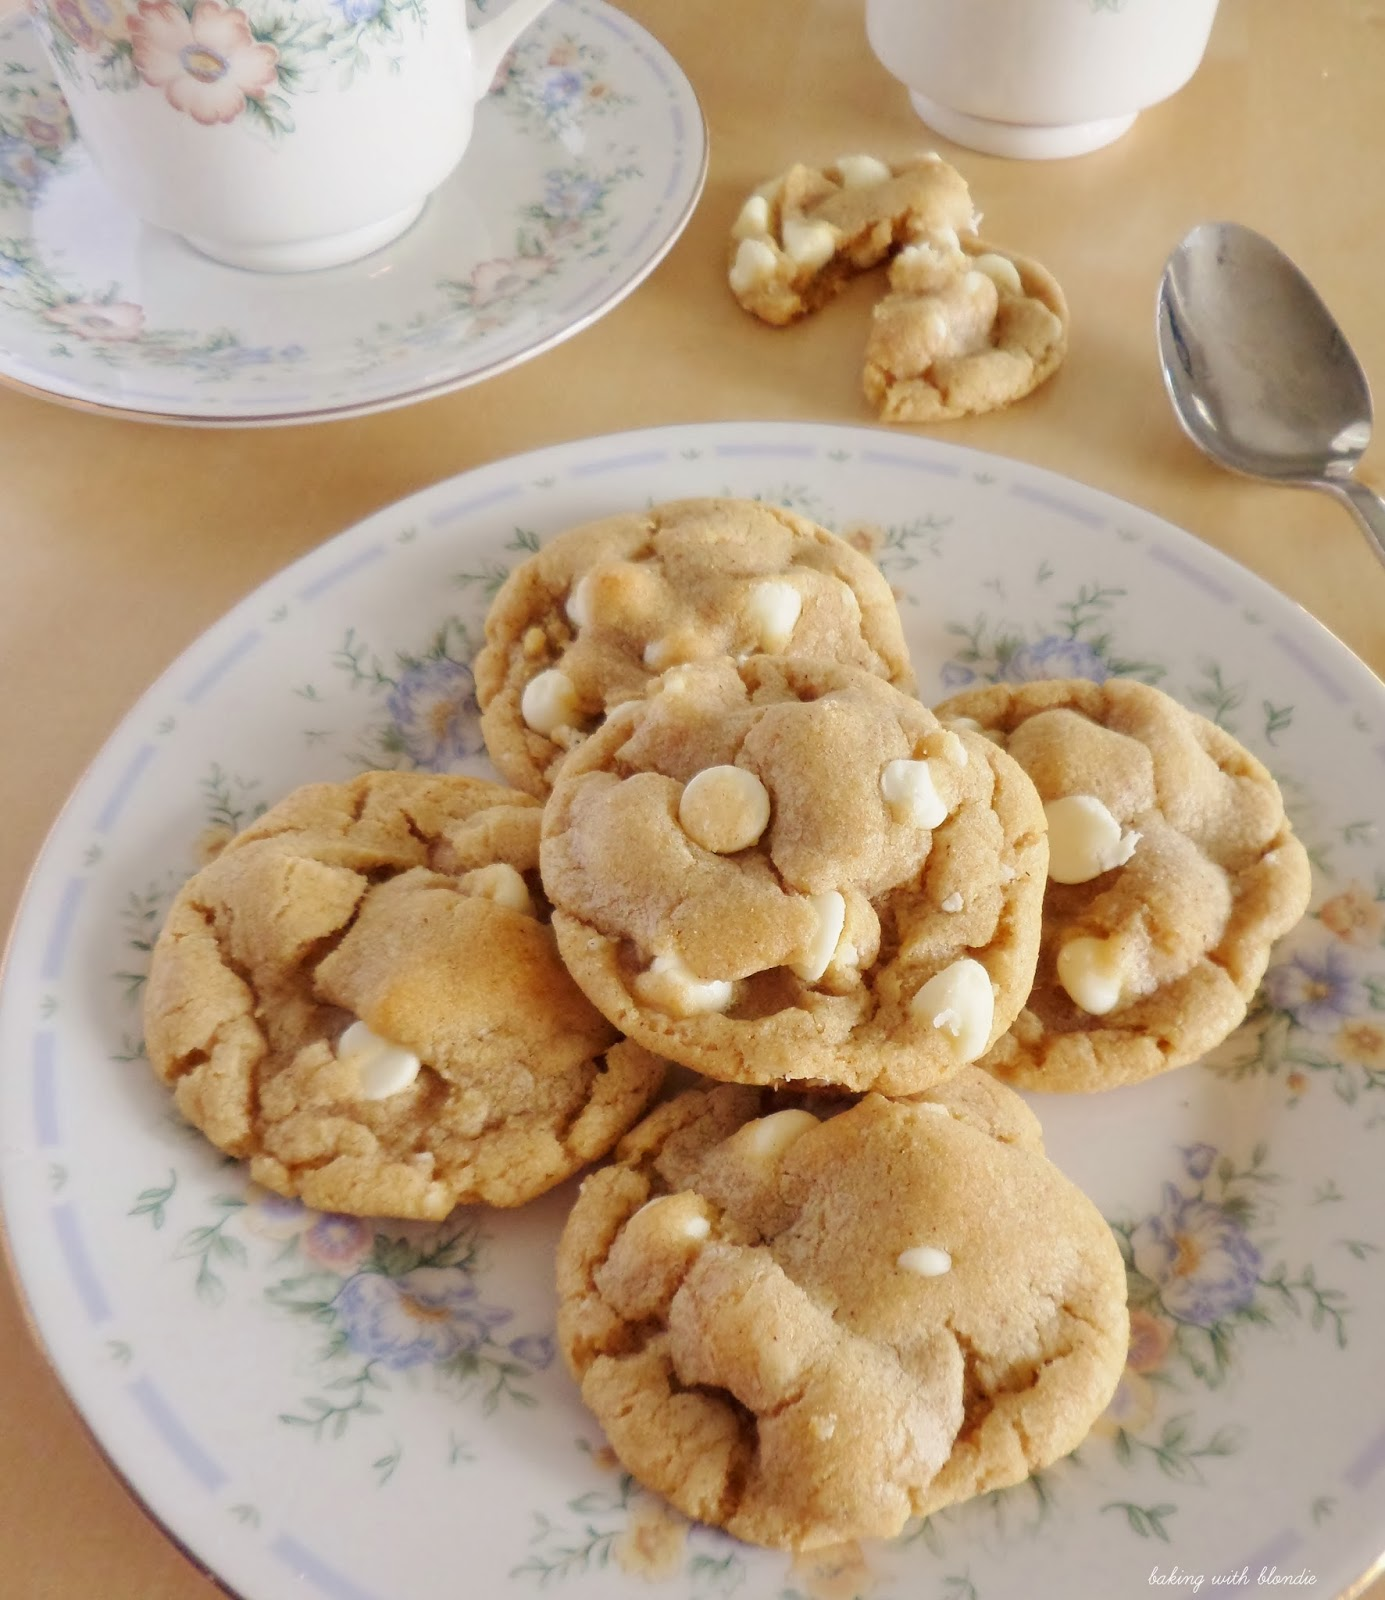 Brown Butter Cinnamon Cookies With White Chocolate Chips